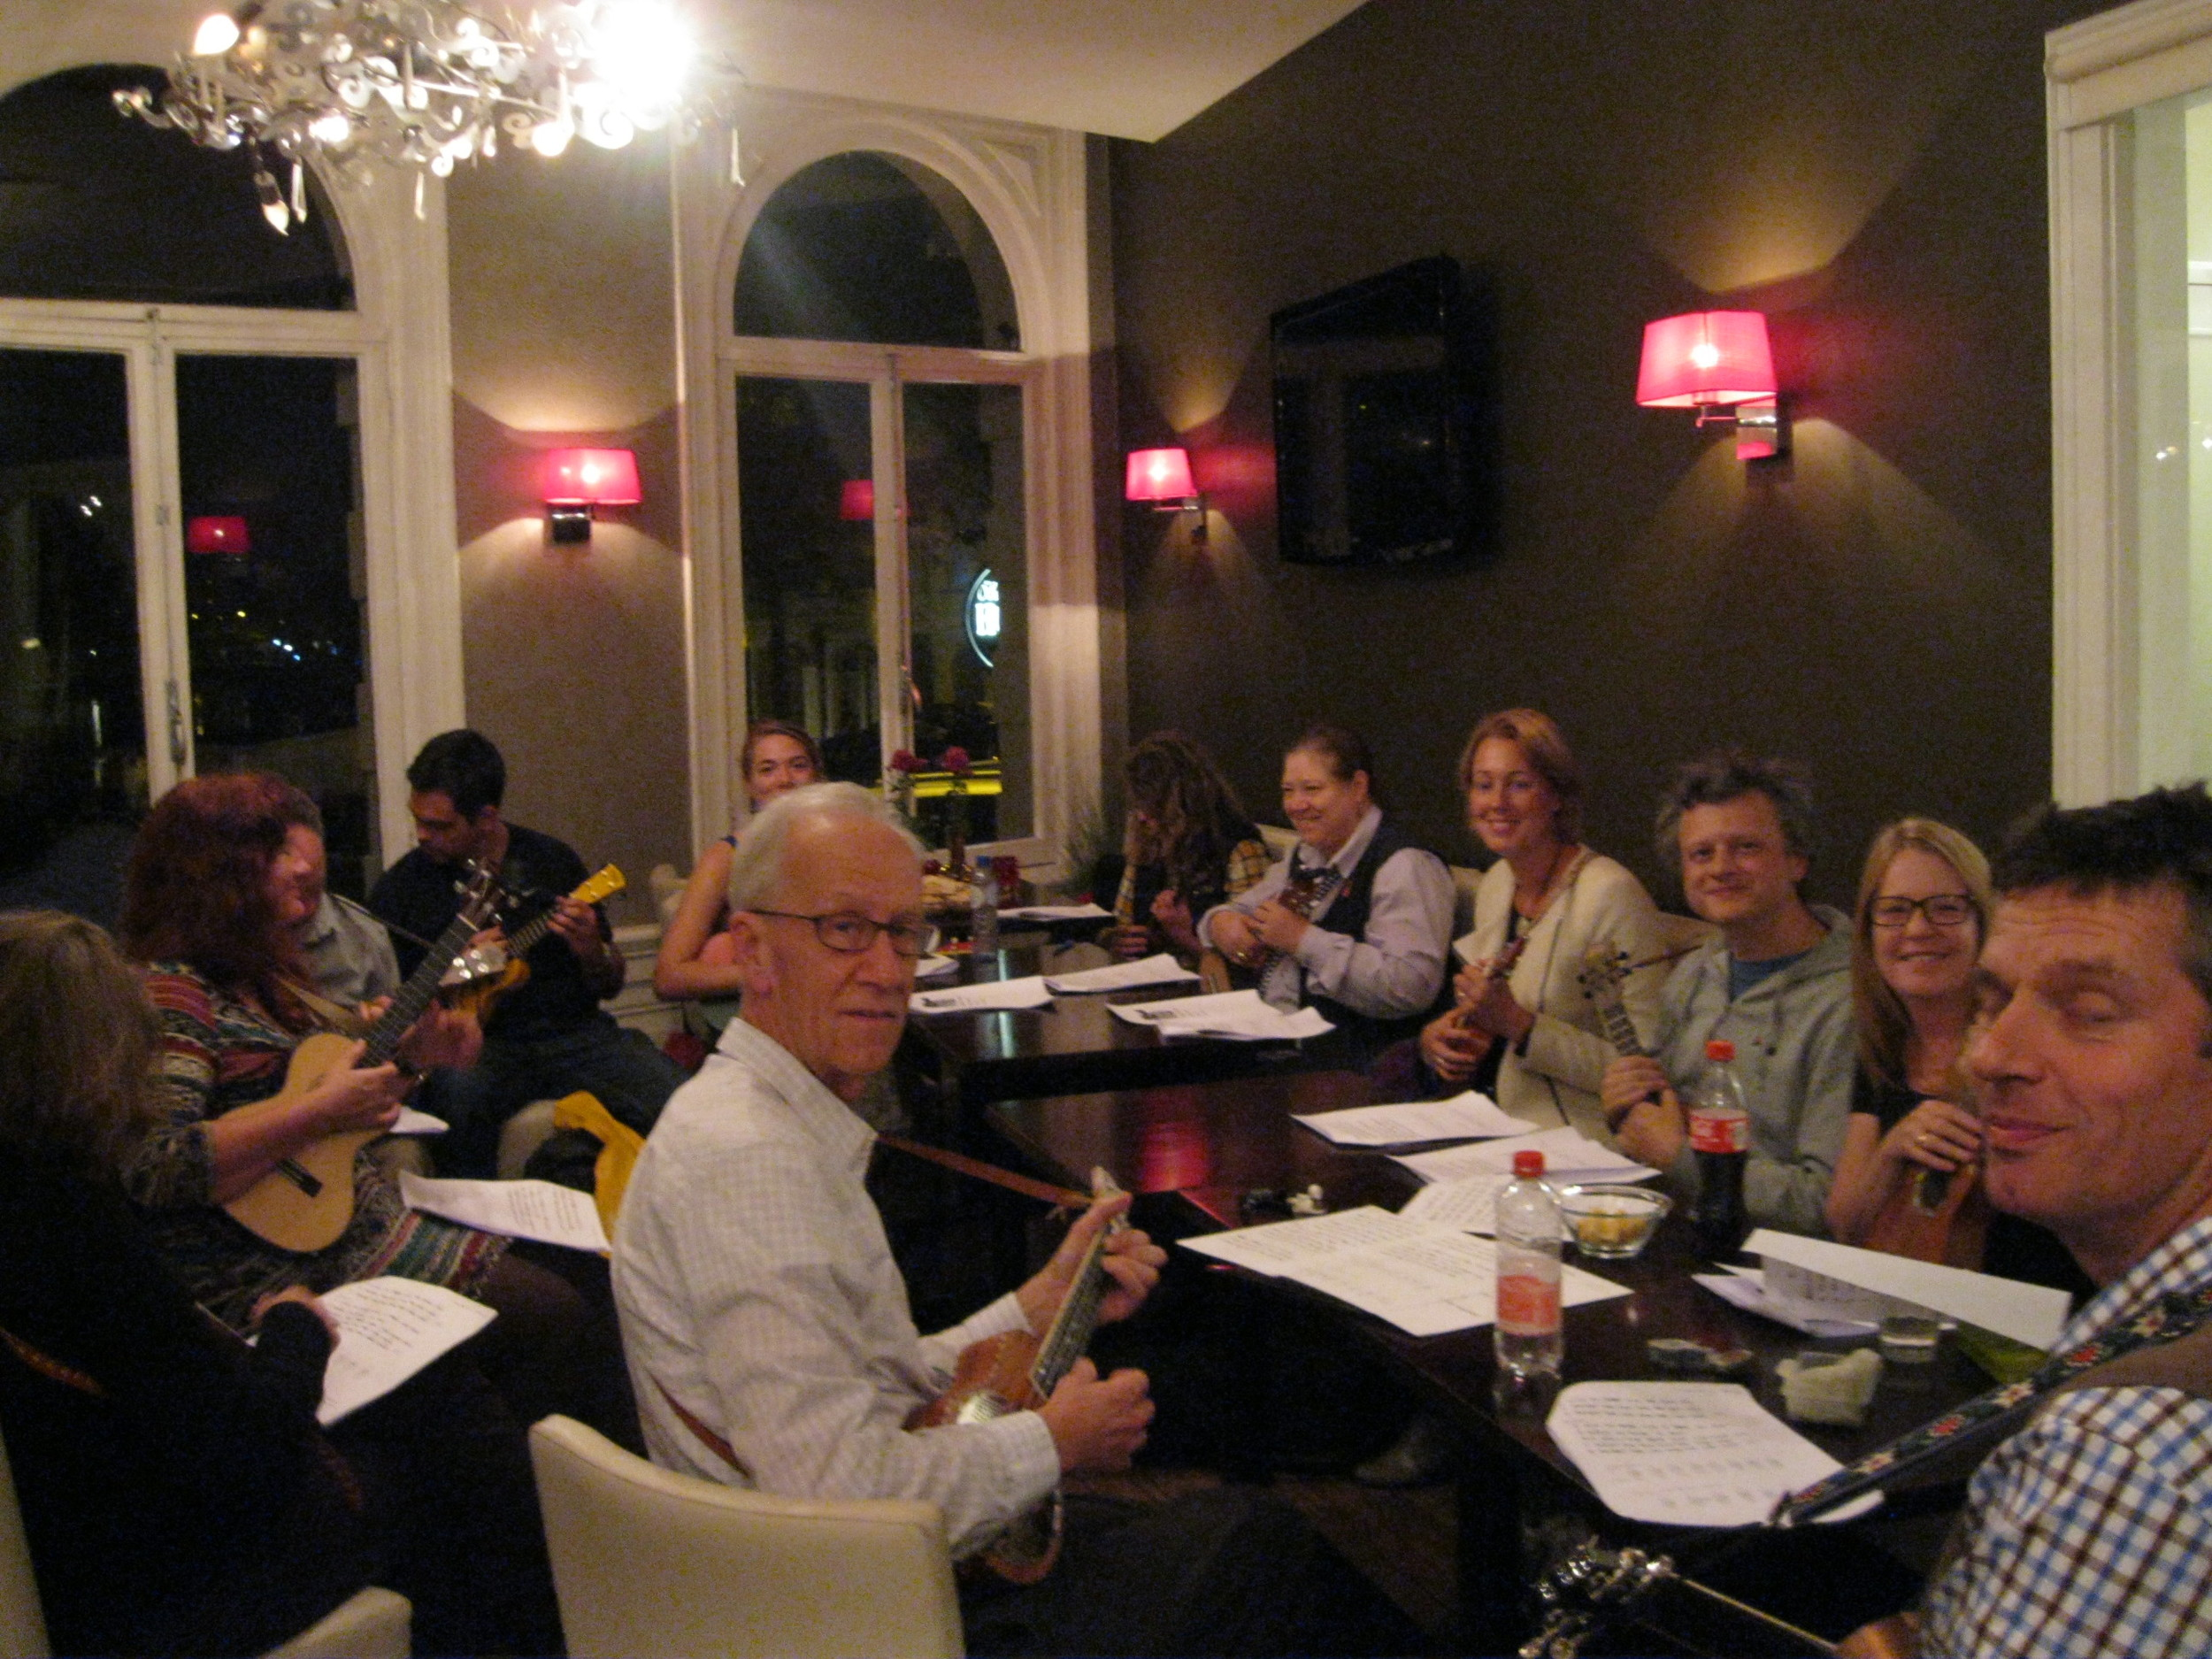 Uke workshop for Amsterdam Uke Club. October, 2014.